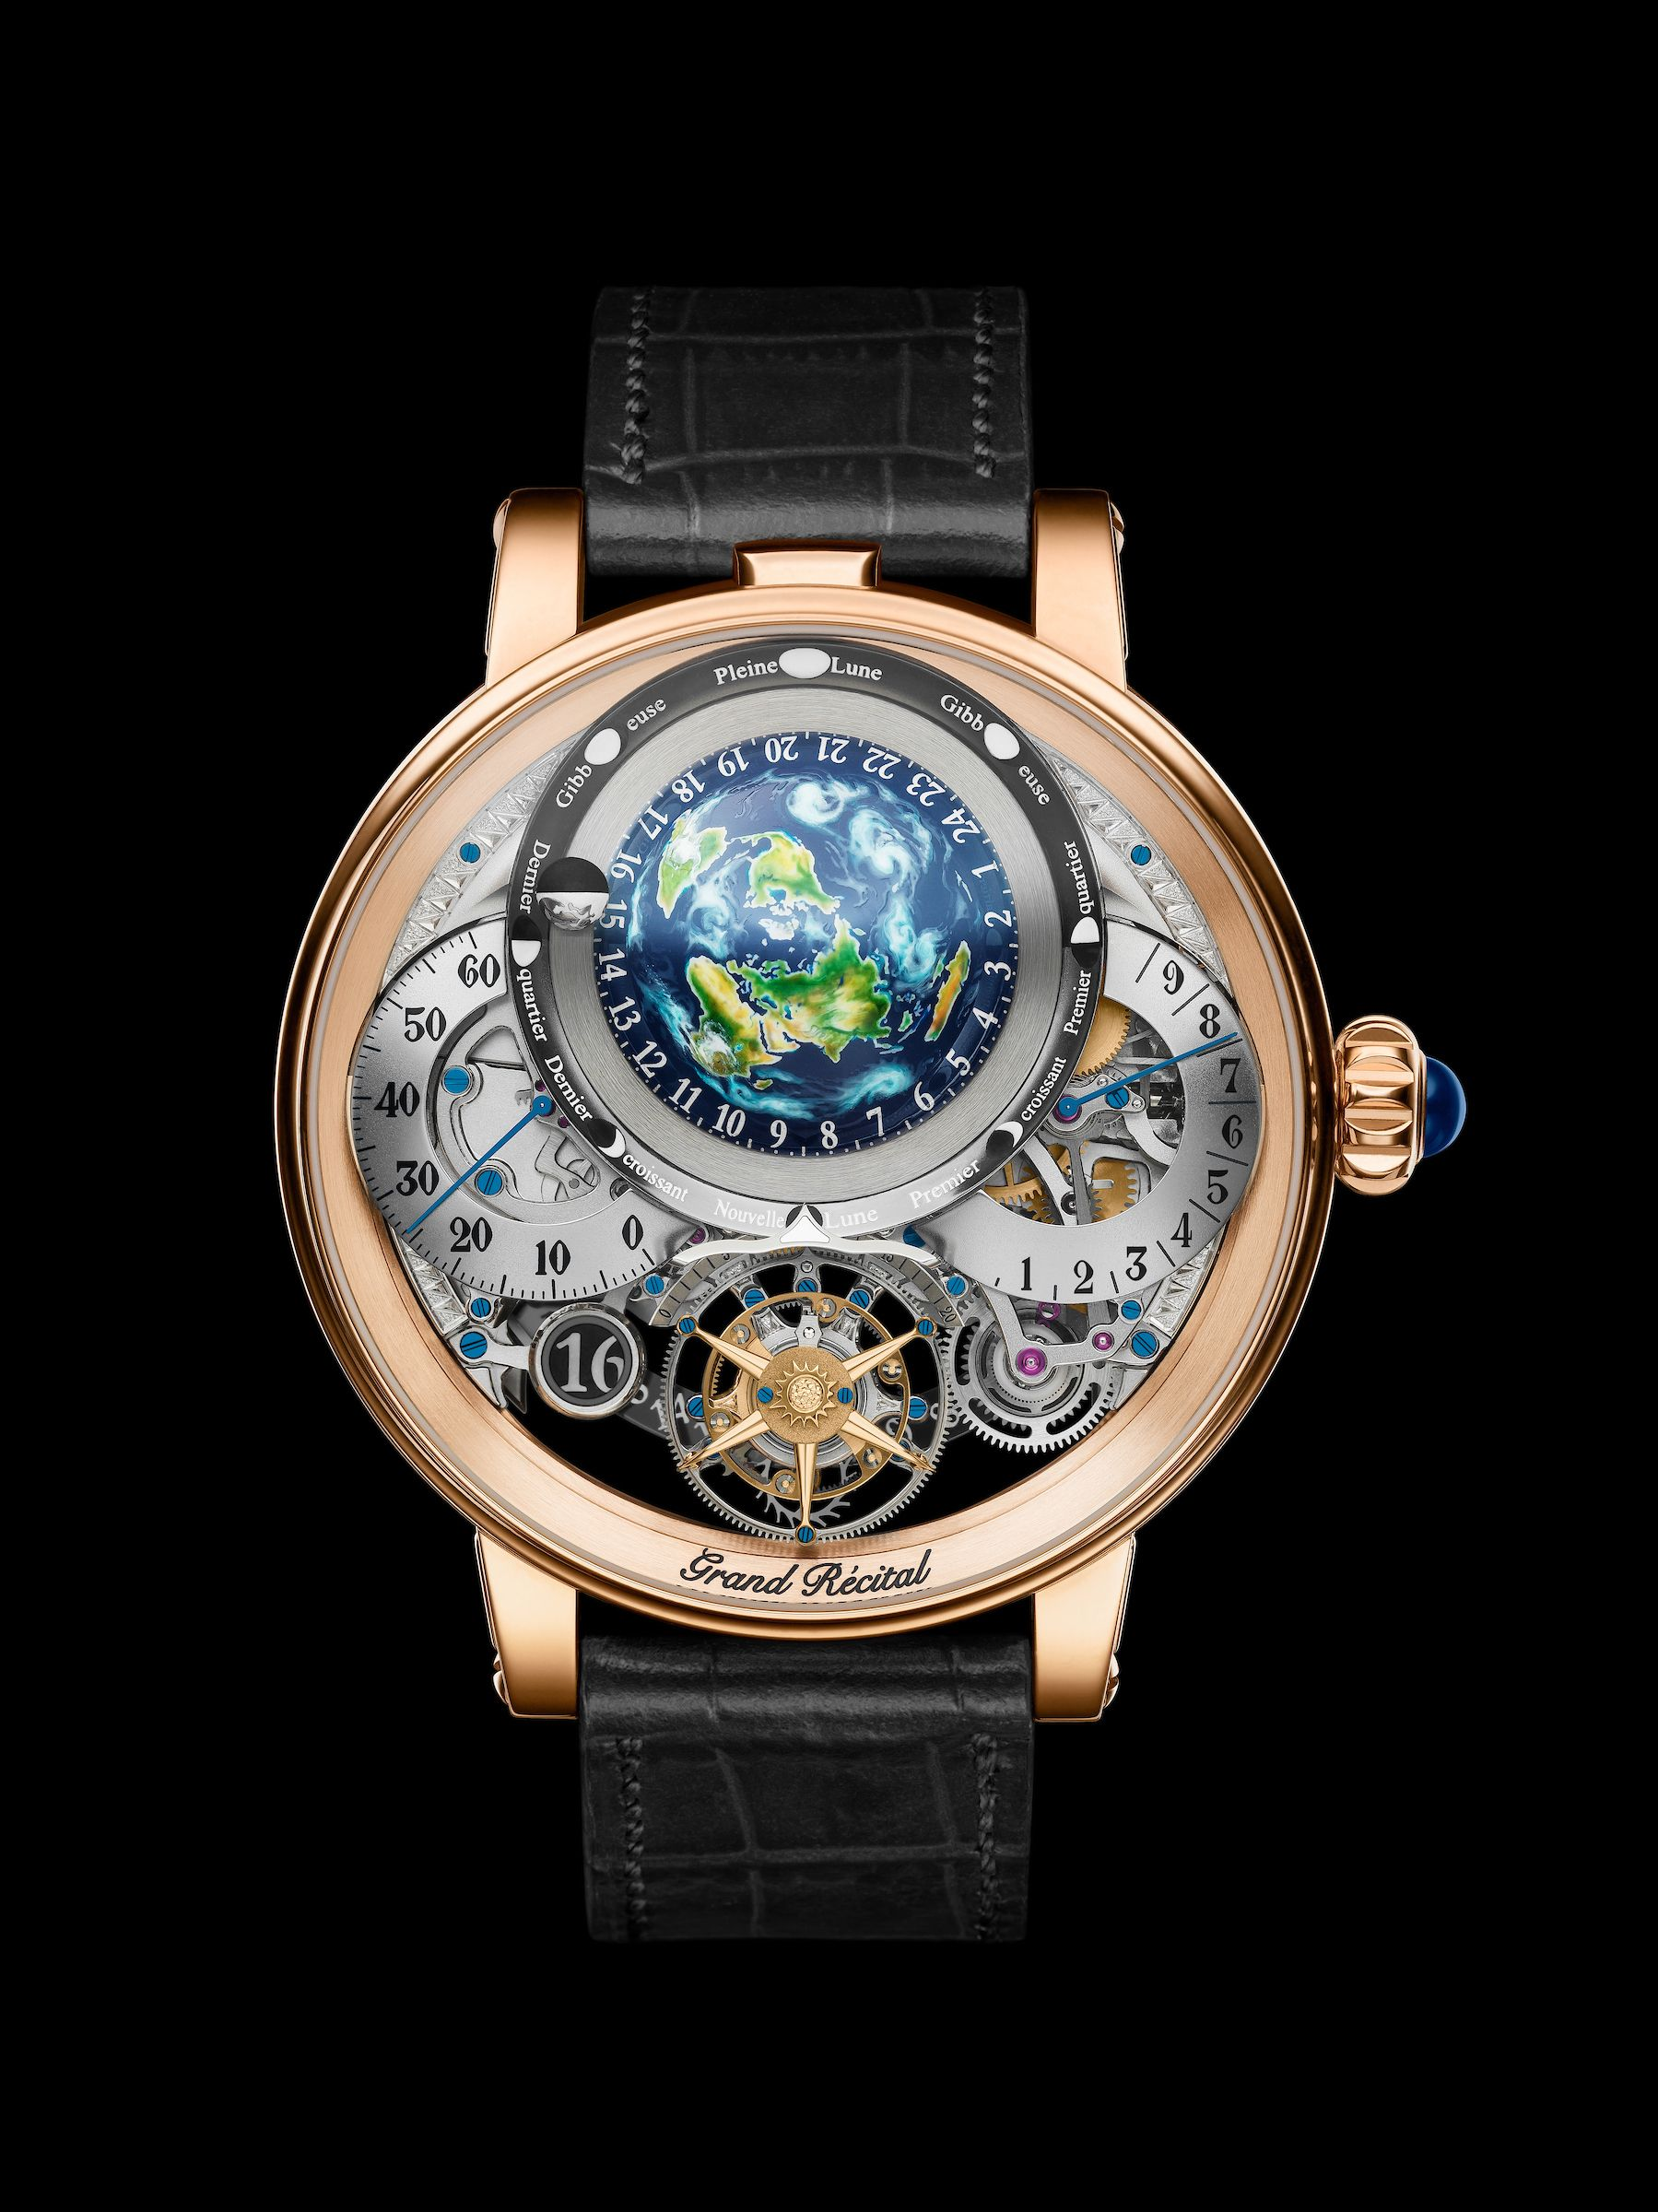 asterium rium article crop innovation watches bovet recital ast r cover technology and cital worldtempus